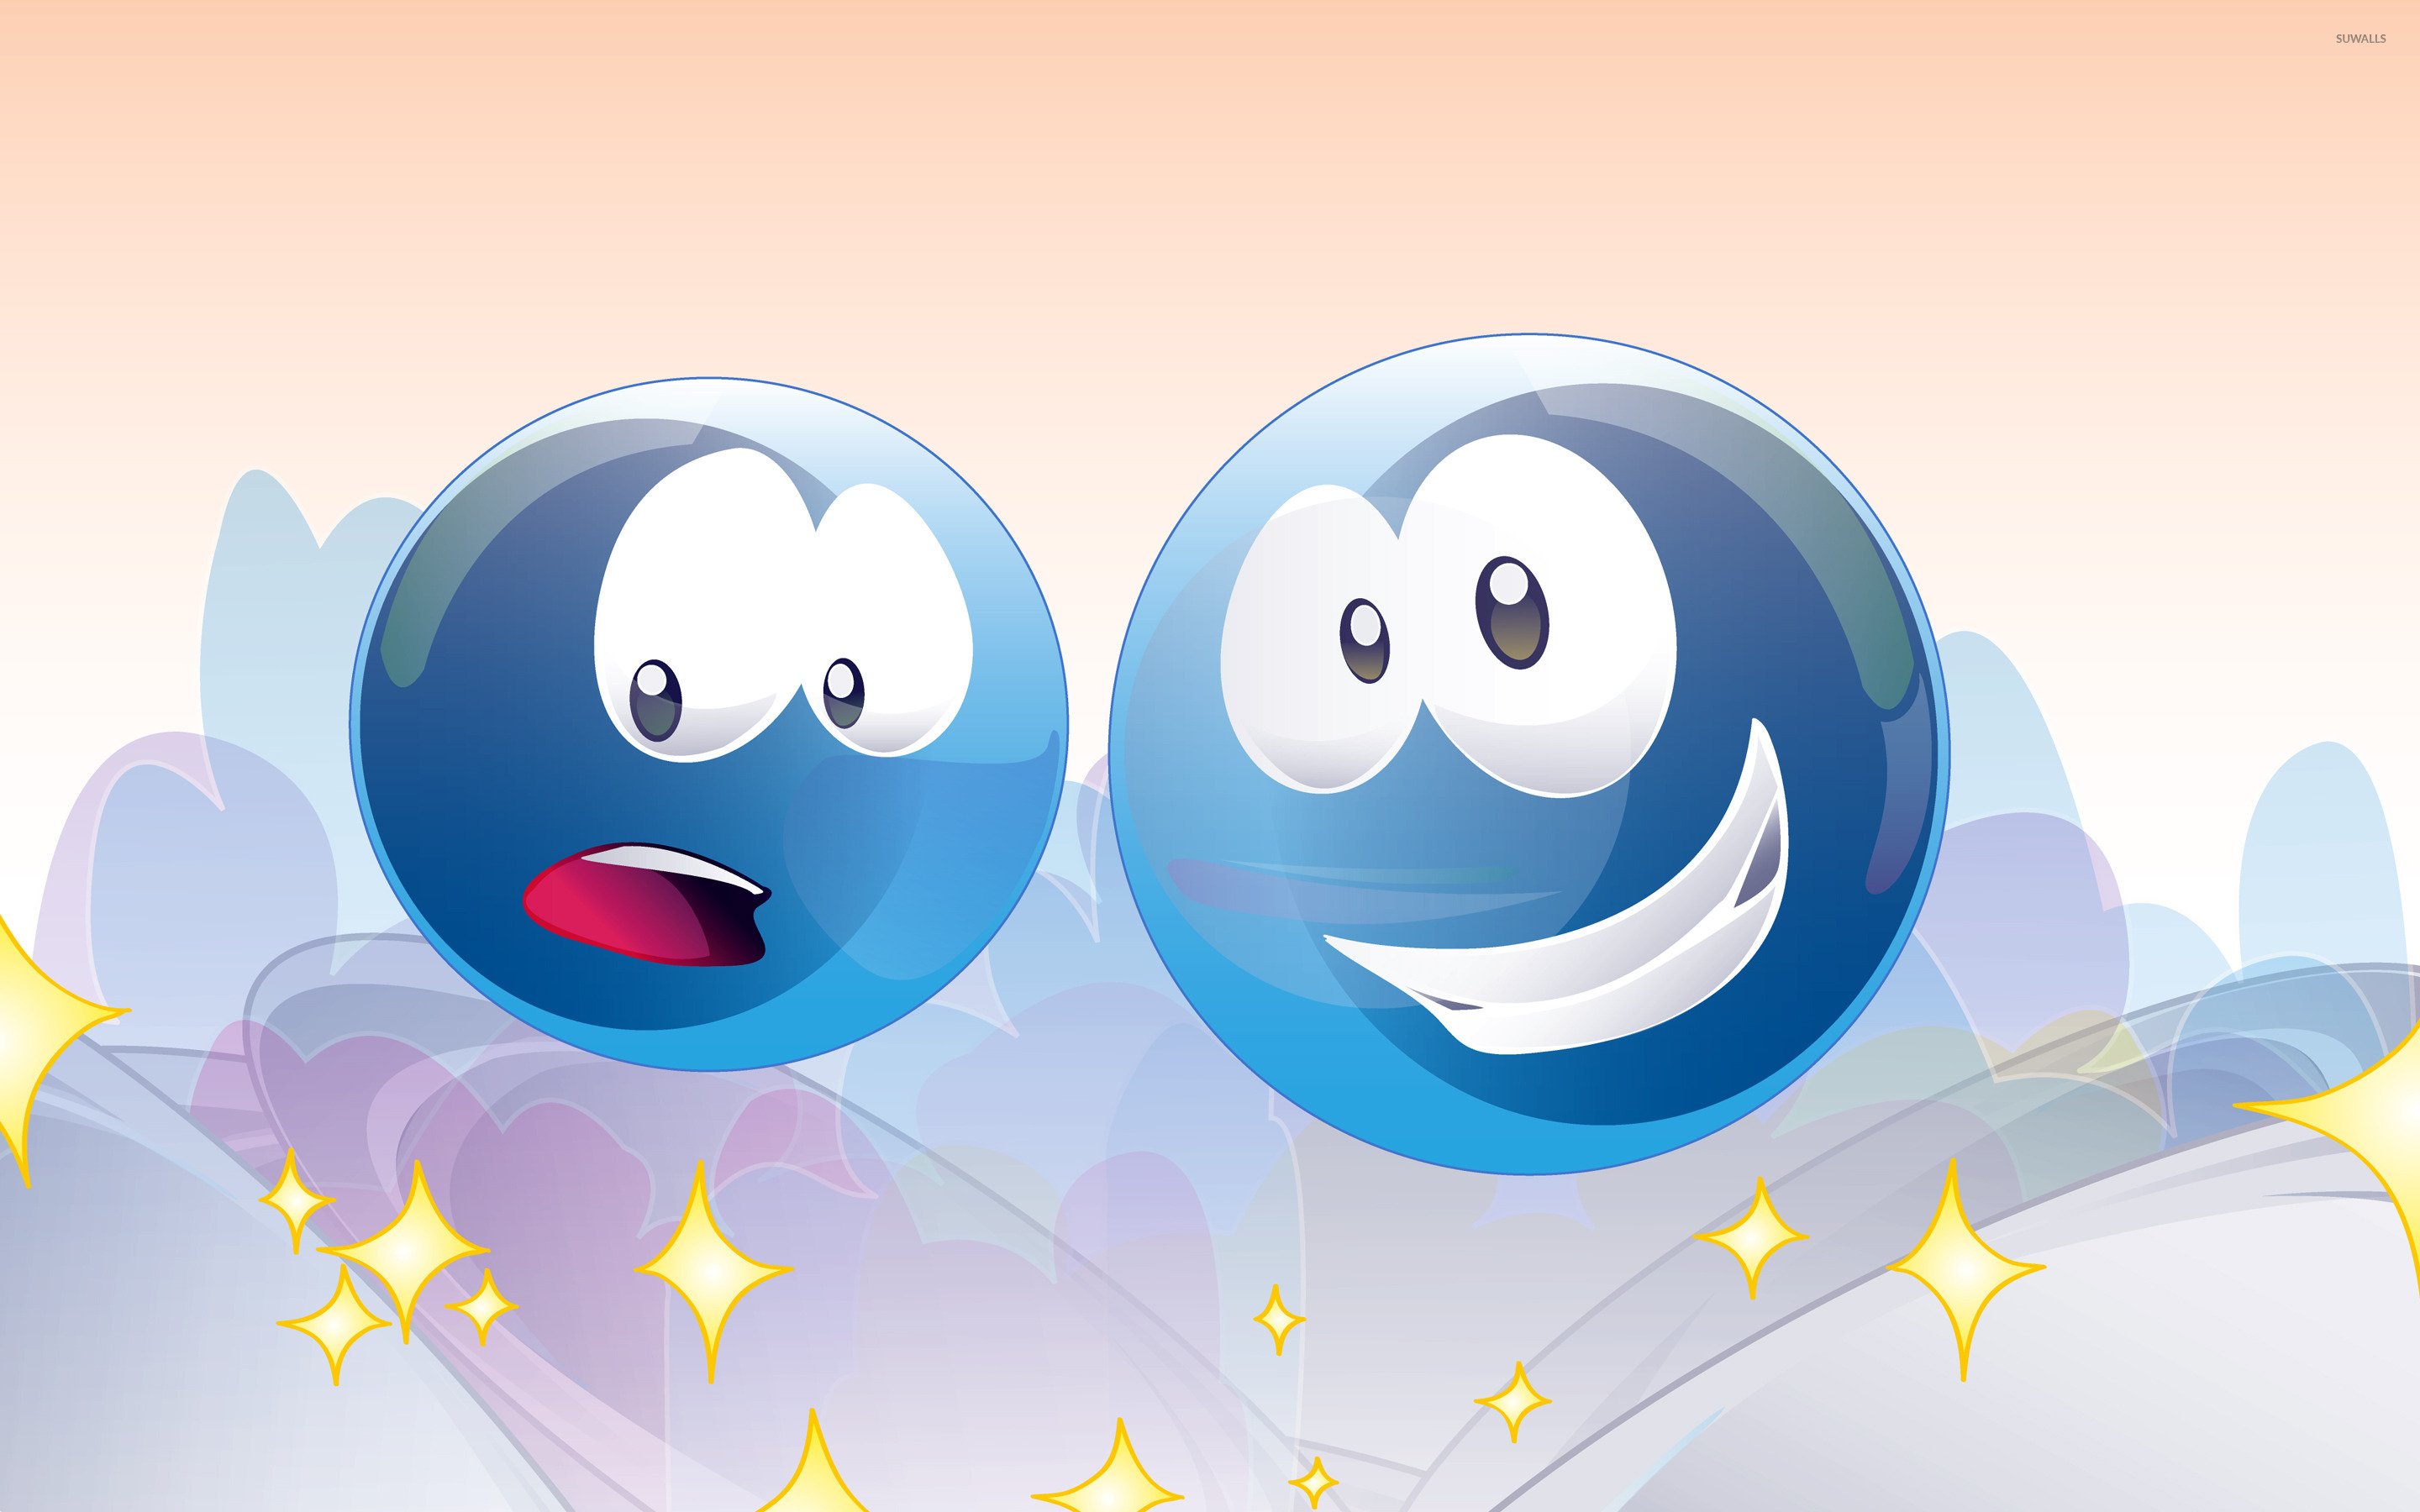 Blue emoticons wallpaper funny wallpapers 20066 blue emoticons wallpaper altavistaventures Images